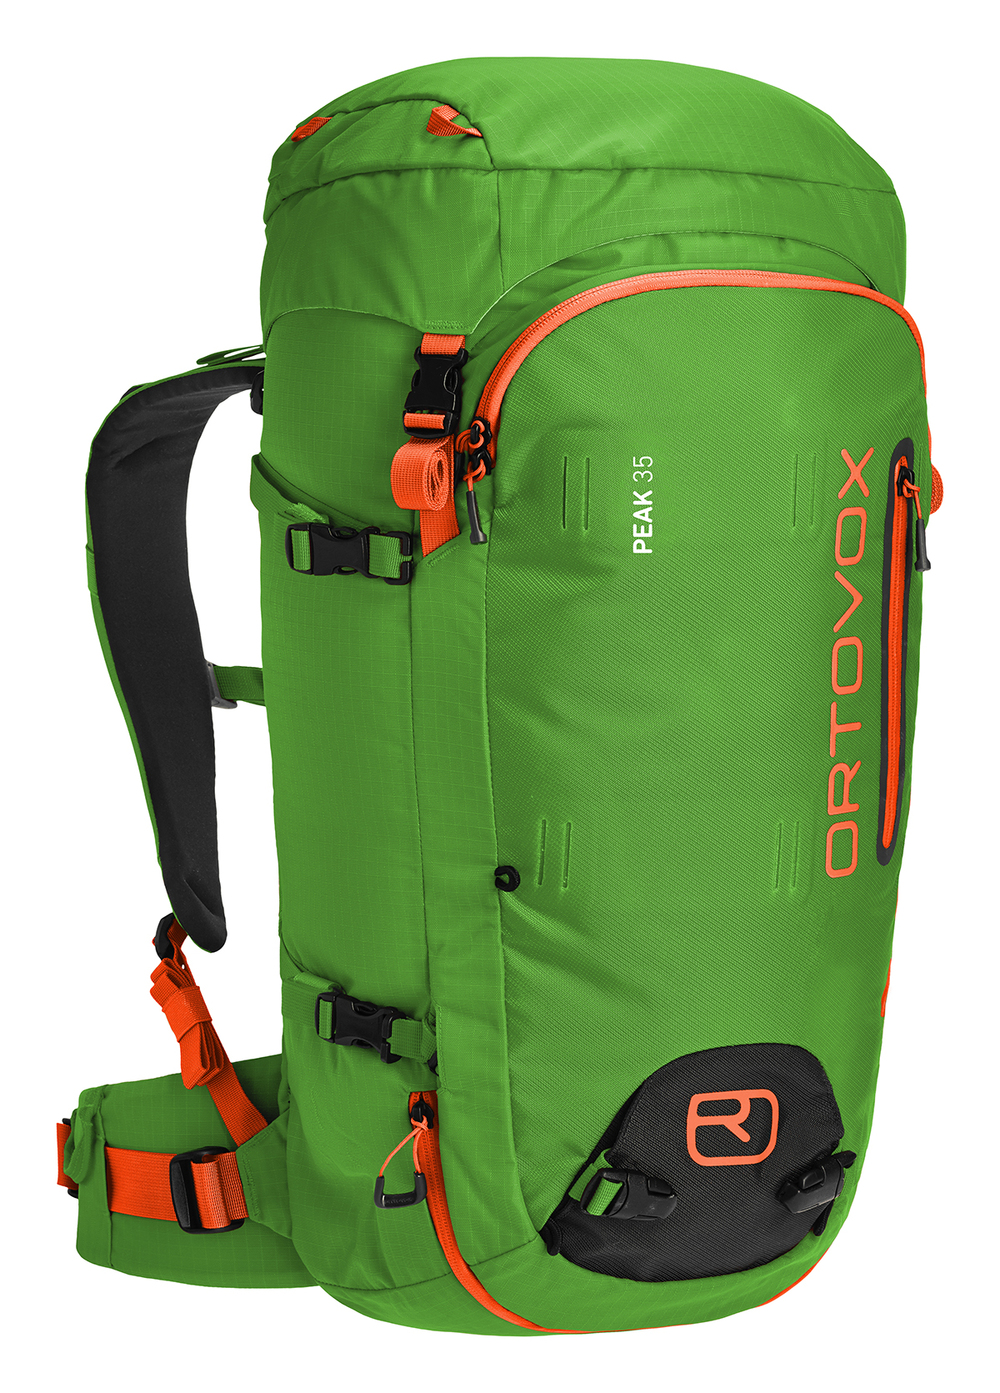 Ortovox Peak 35 Backcountry Pack.  True story:  this is the best ski pack I've ever had the pleasure of carrying.  Clean lines, incredible attention to detail, carries great, and has a perimeter zipper that will make you turn your nose up at every other pack.  Is it possible a pack can make you want to ski more?  This one does.  LINK